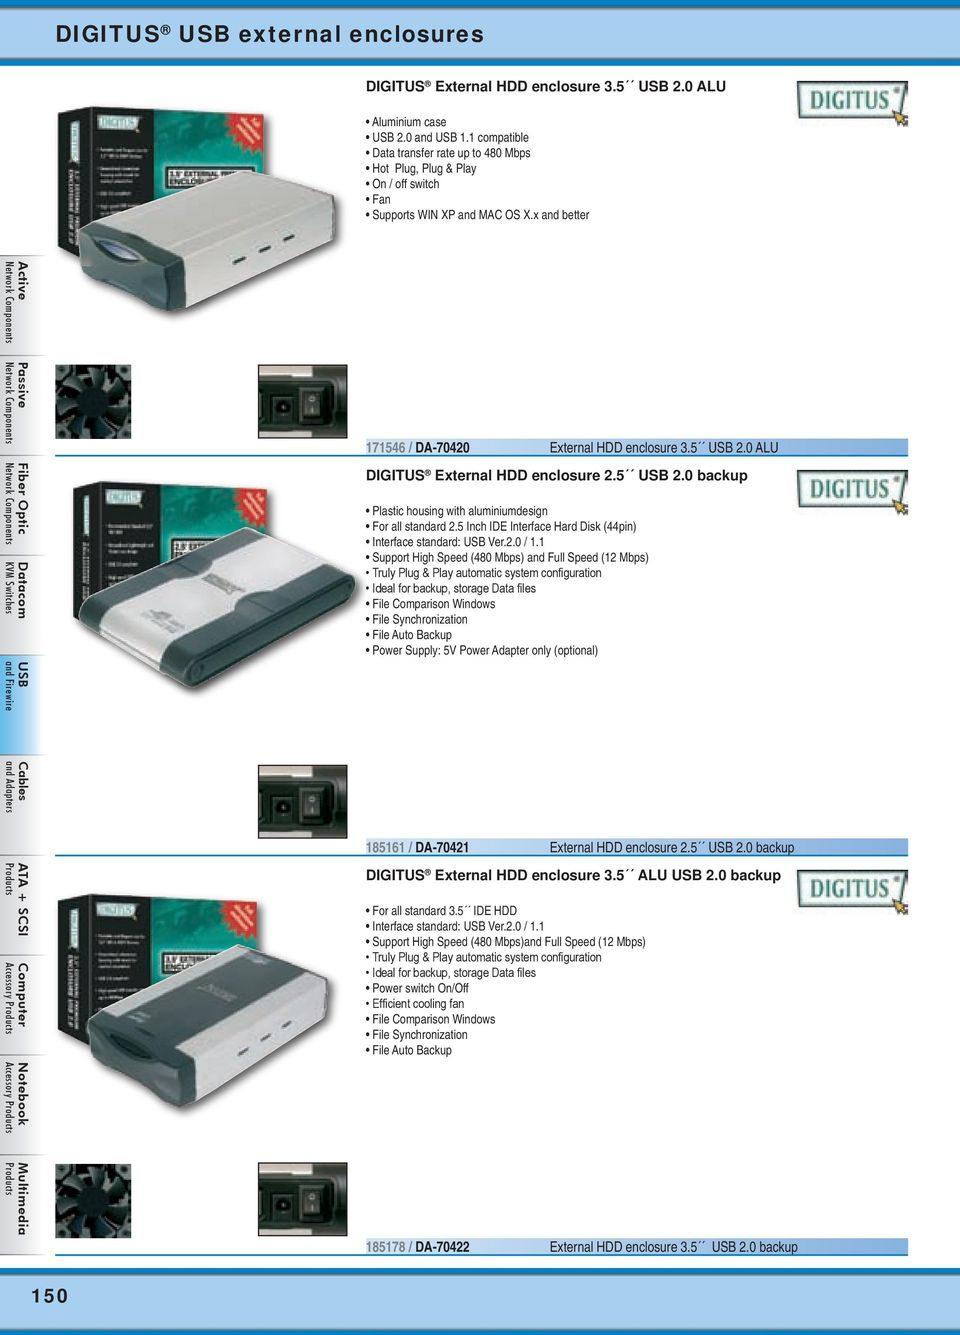 Usb And Firewire Digitus Hubs From Page 142 Card Notebook Ide Interface Cdrom To External Drive Circuit Board 3 0 Alu Hdd Enclosure 25 20 Backup Plastic Housing With Aluminiumdesign For All Standard